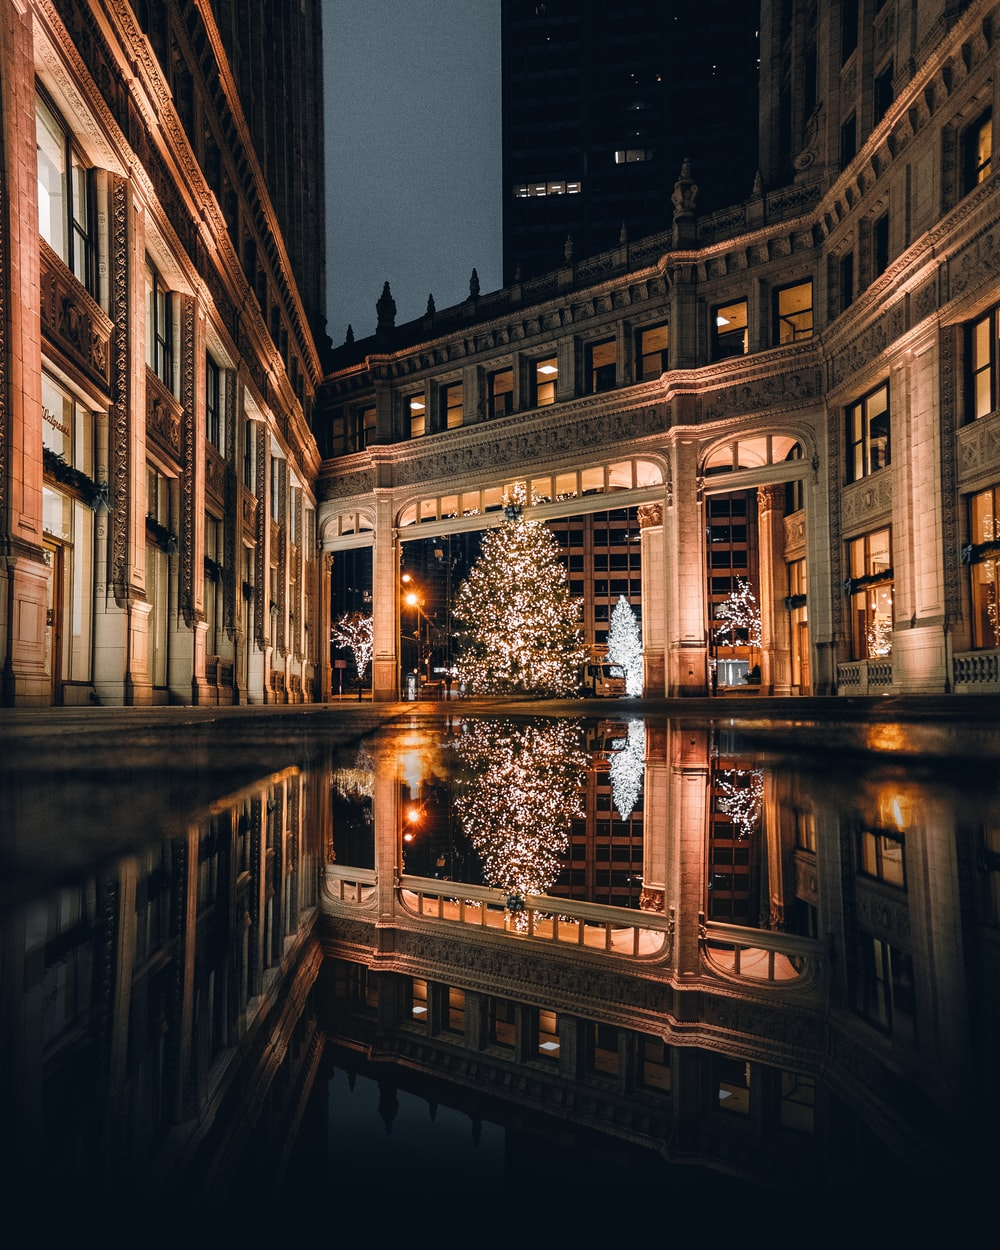 body of water beside Christmas tree